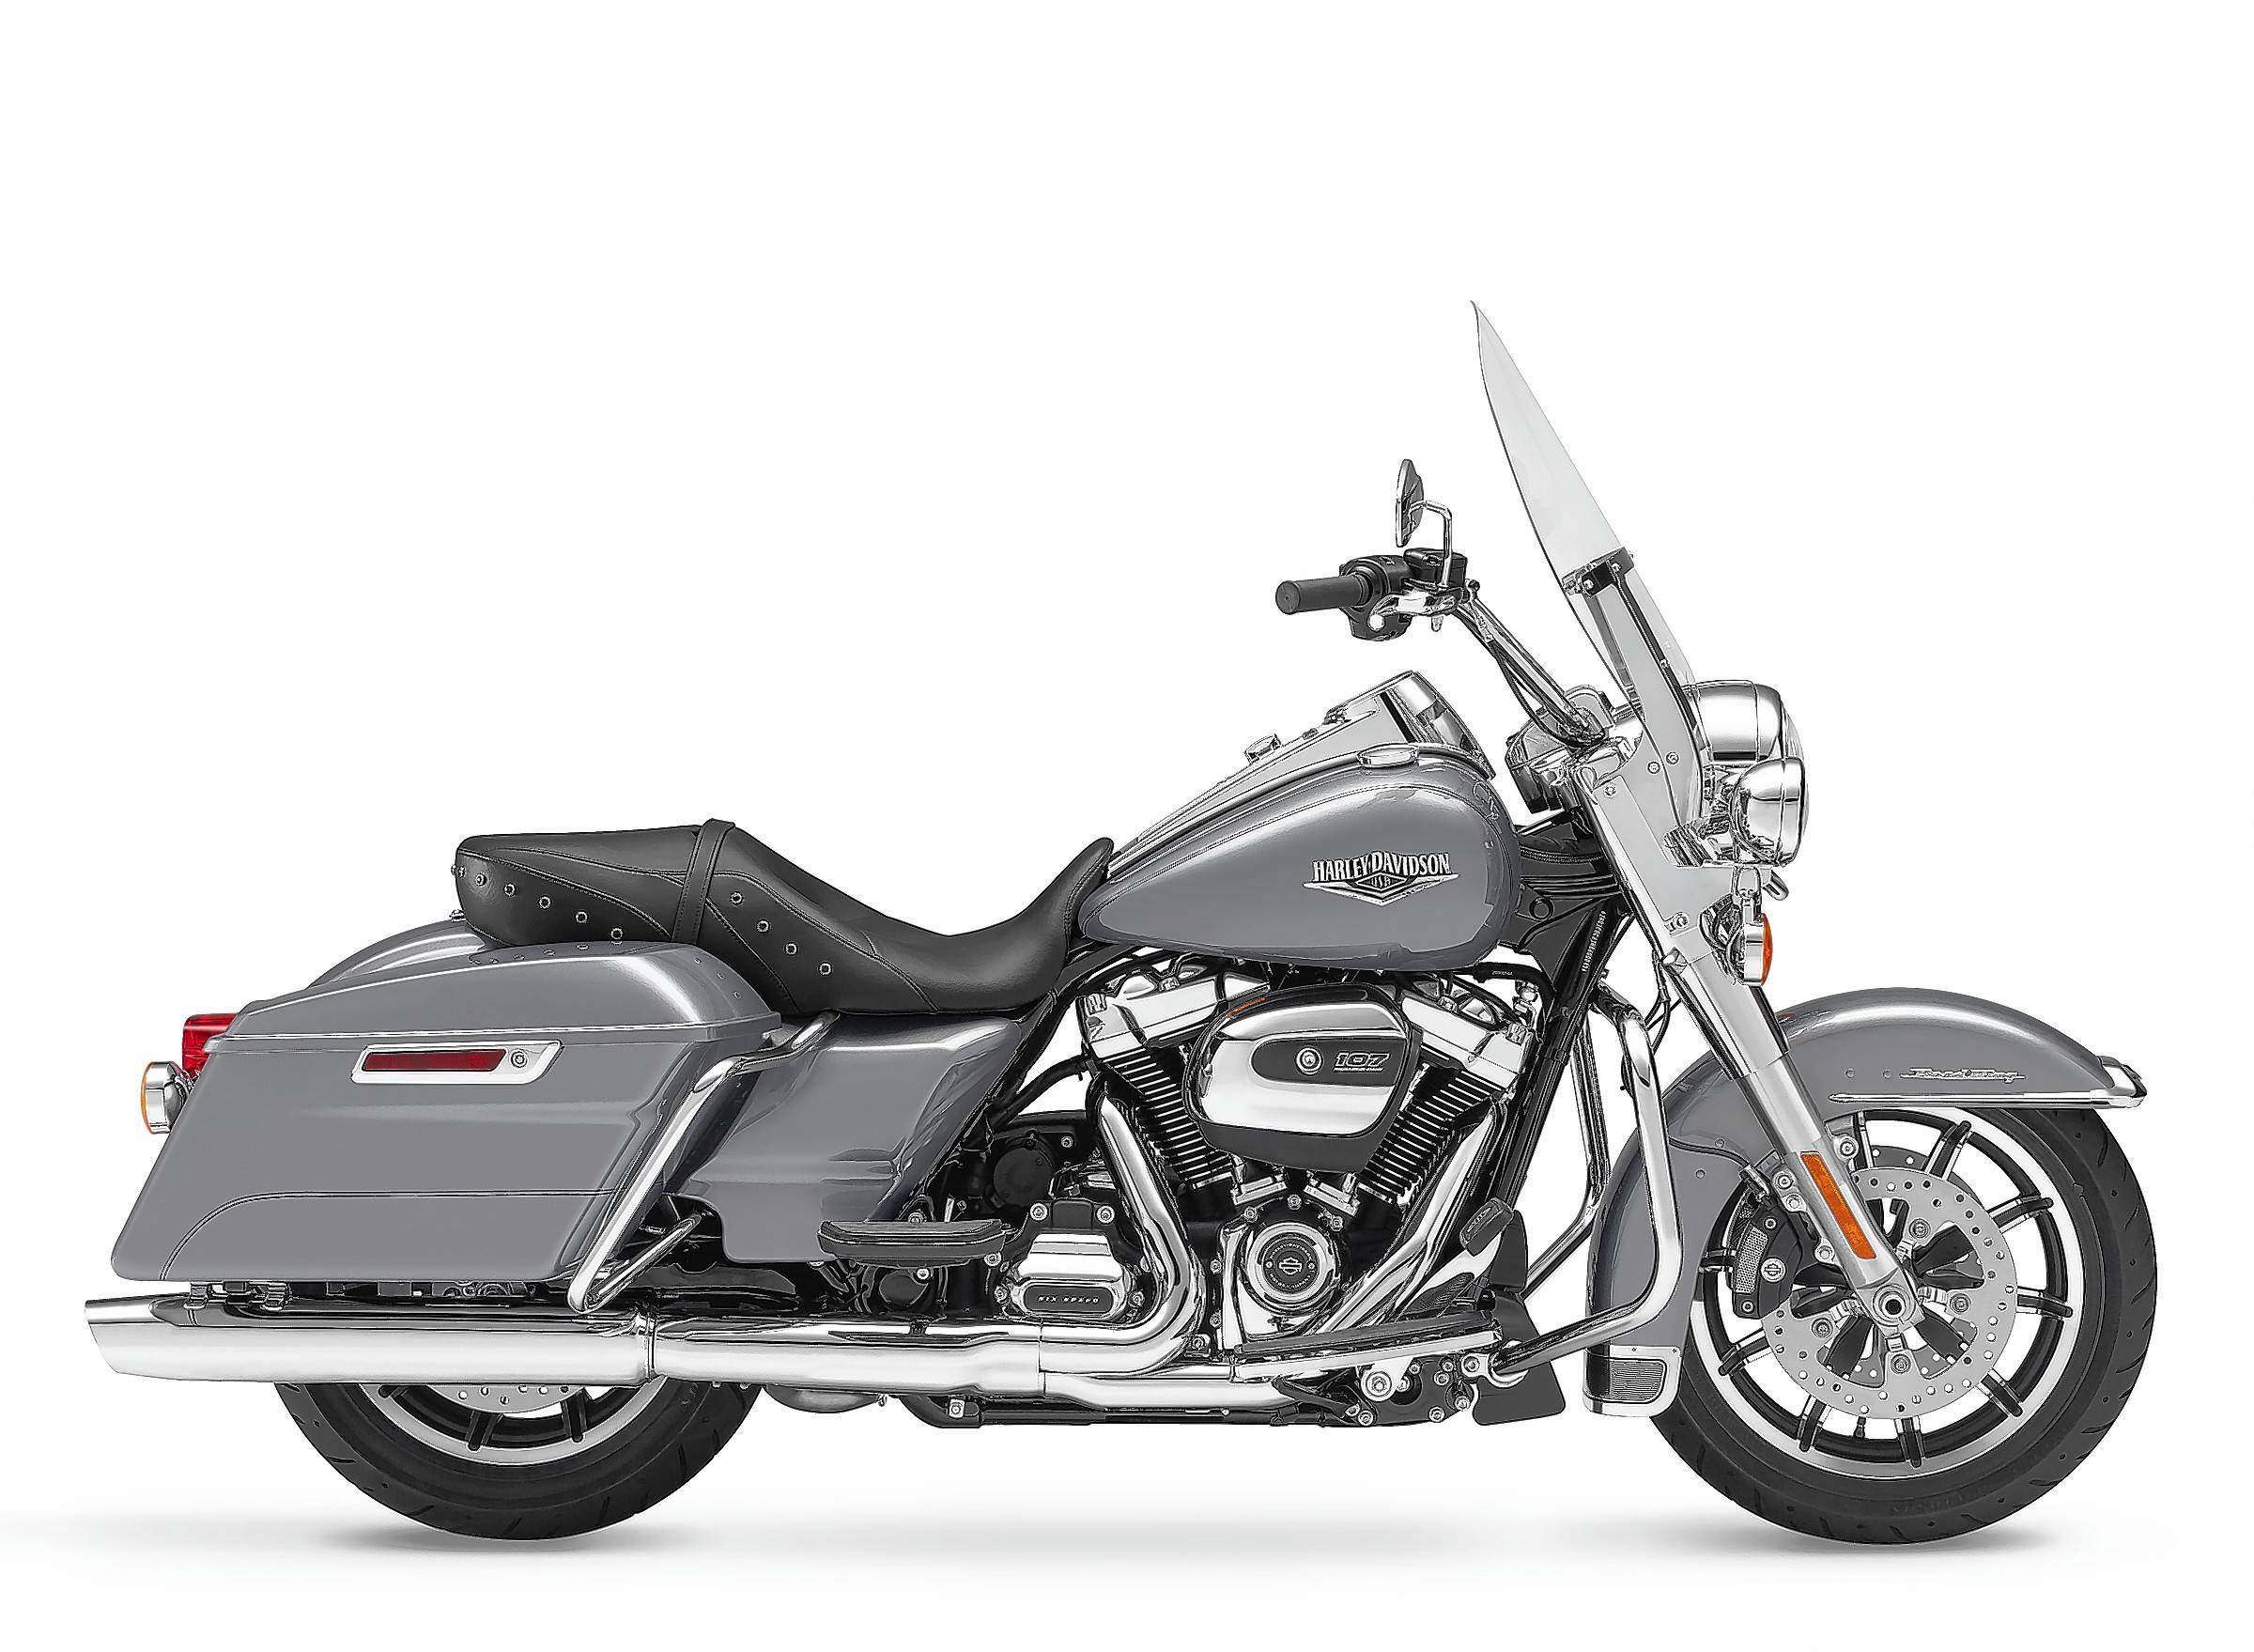 The new Road King starts at $18,999 for Vivid Black, or $19,449 for a color.